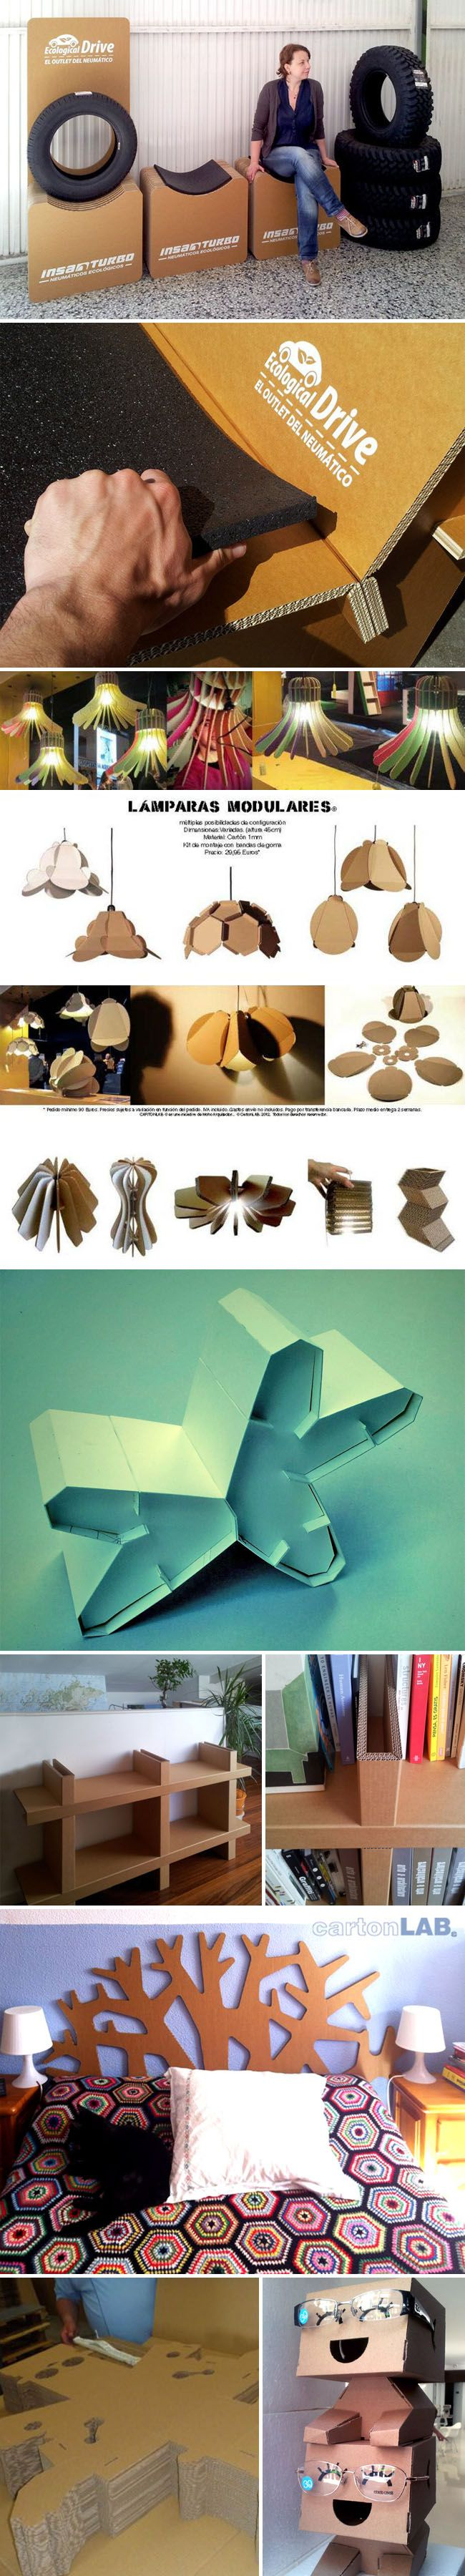 CartonLAB_cardboard-furniture_retail-displays_tradeshow_booths_collabcubed